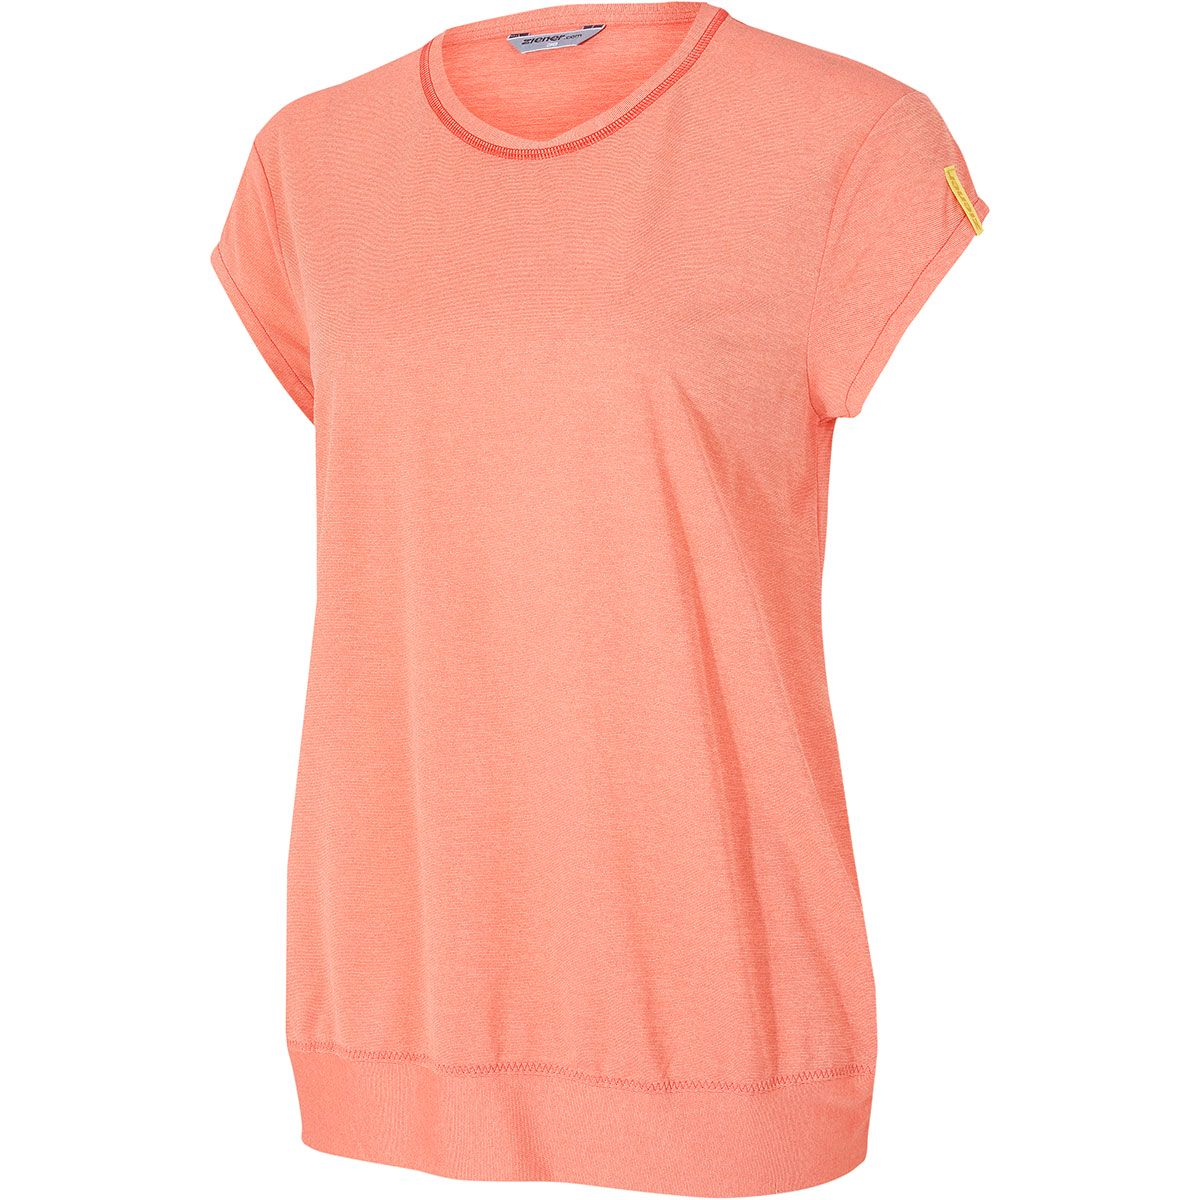 Ziener Damen Cadan T-Shirt (Größe L, Orange) | T-Shirts Funktion > Damen